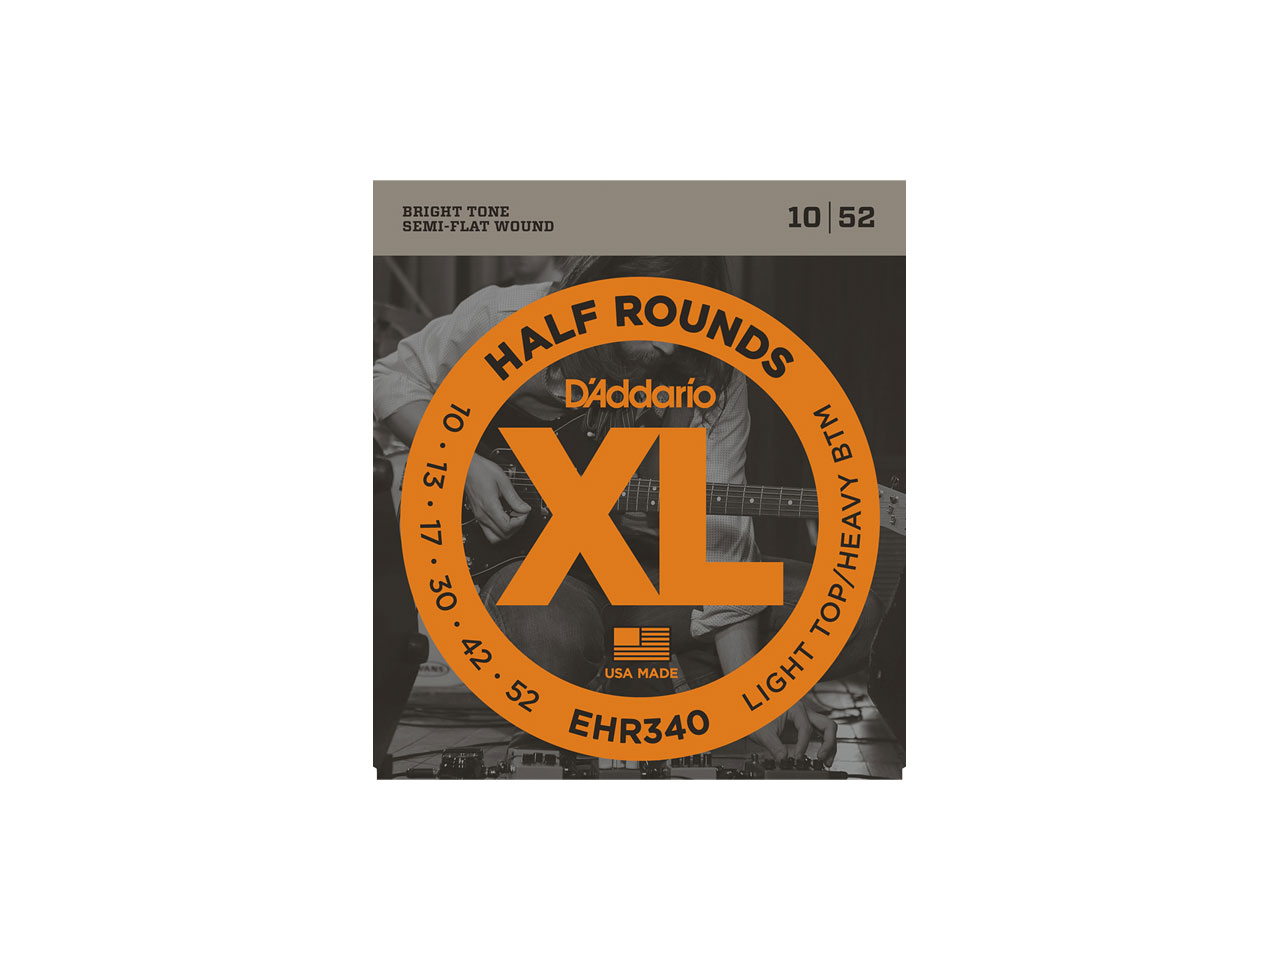 D'Addario(ダダリオ) XL Half Rounds Light Top/Heavy Bottom / EHR340 (エレキギター弦)